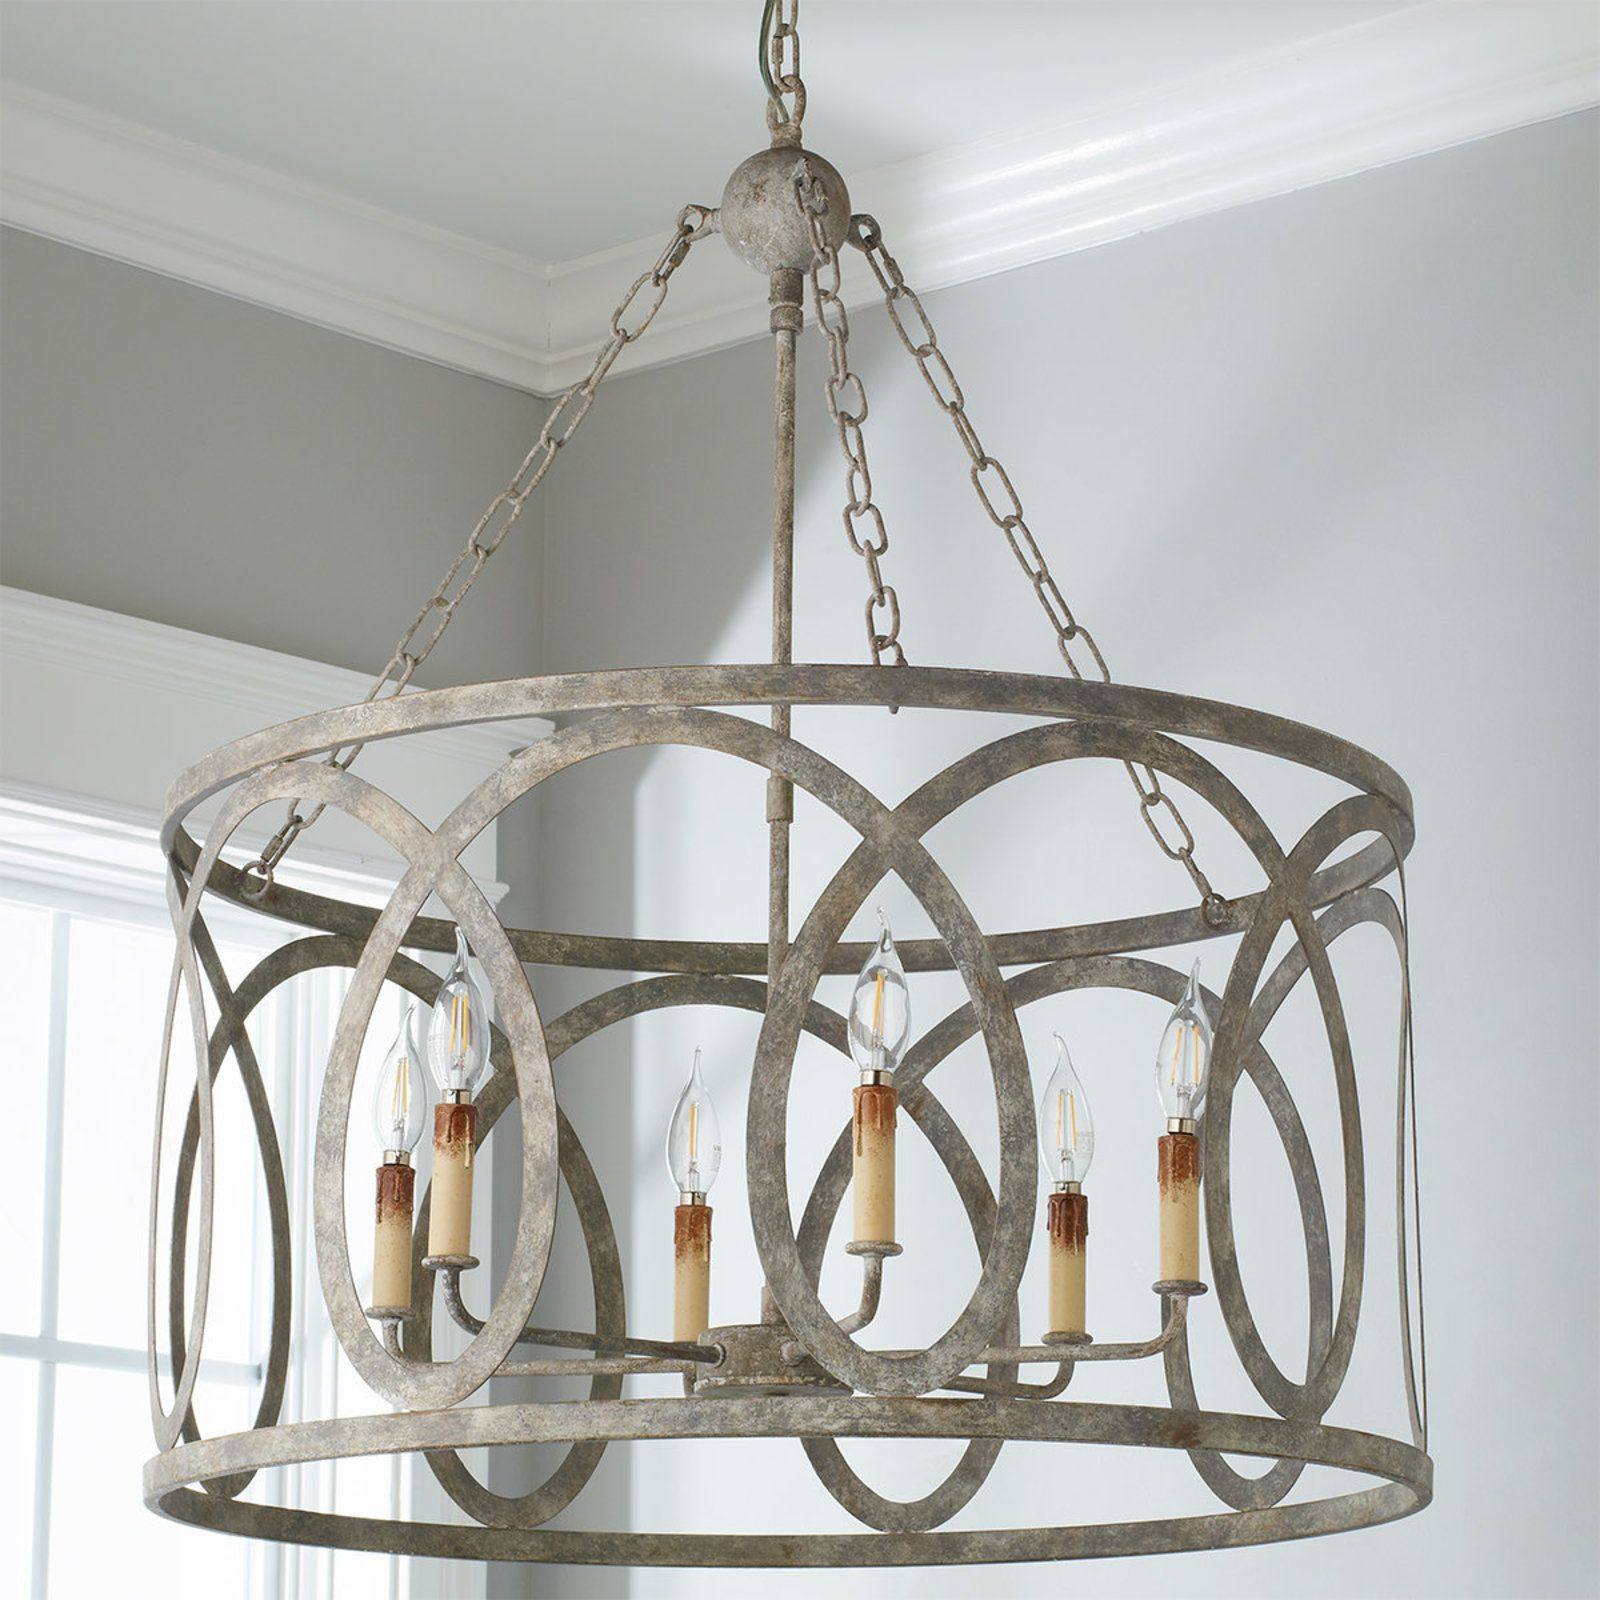 Circle Cage Candles Chandelier Drum Chandelier Grey